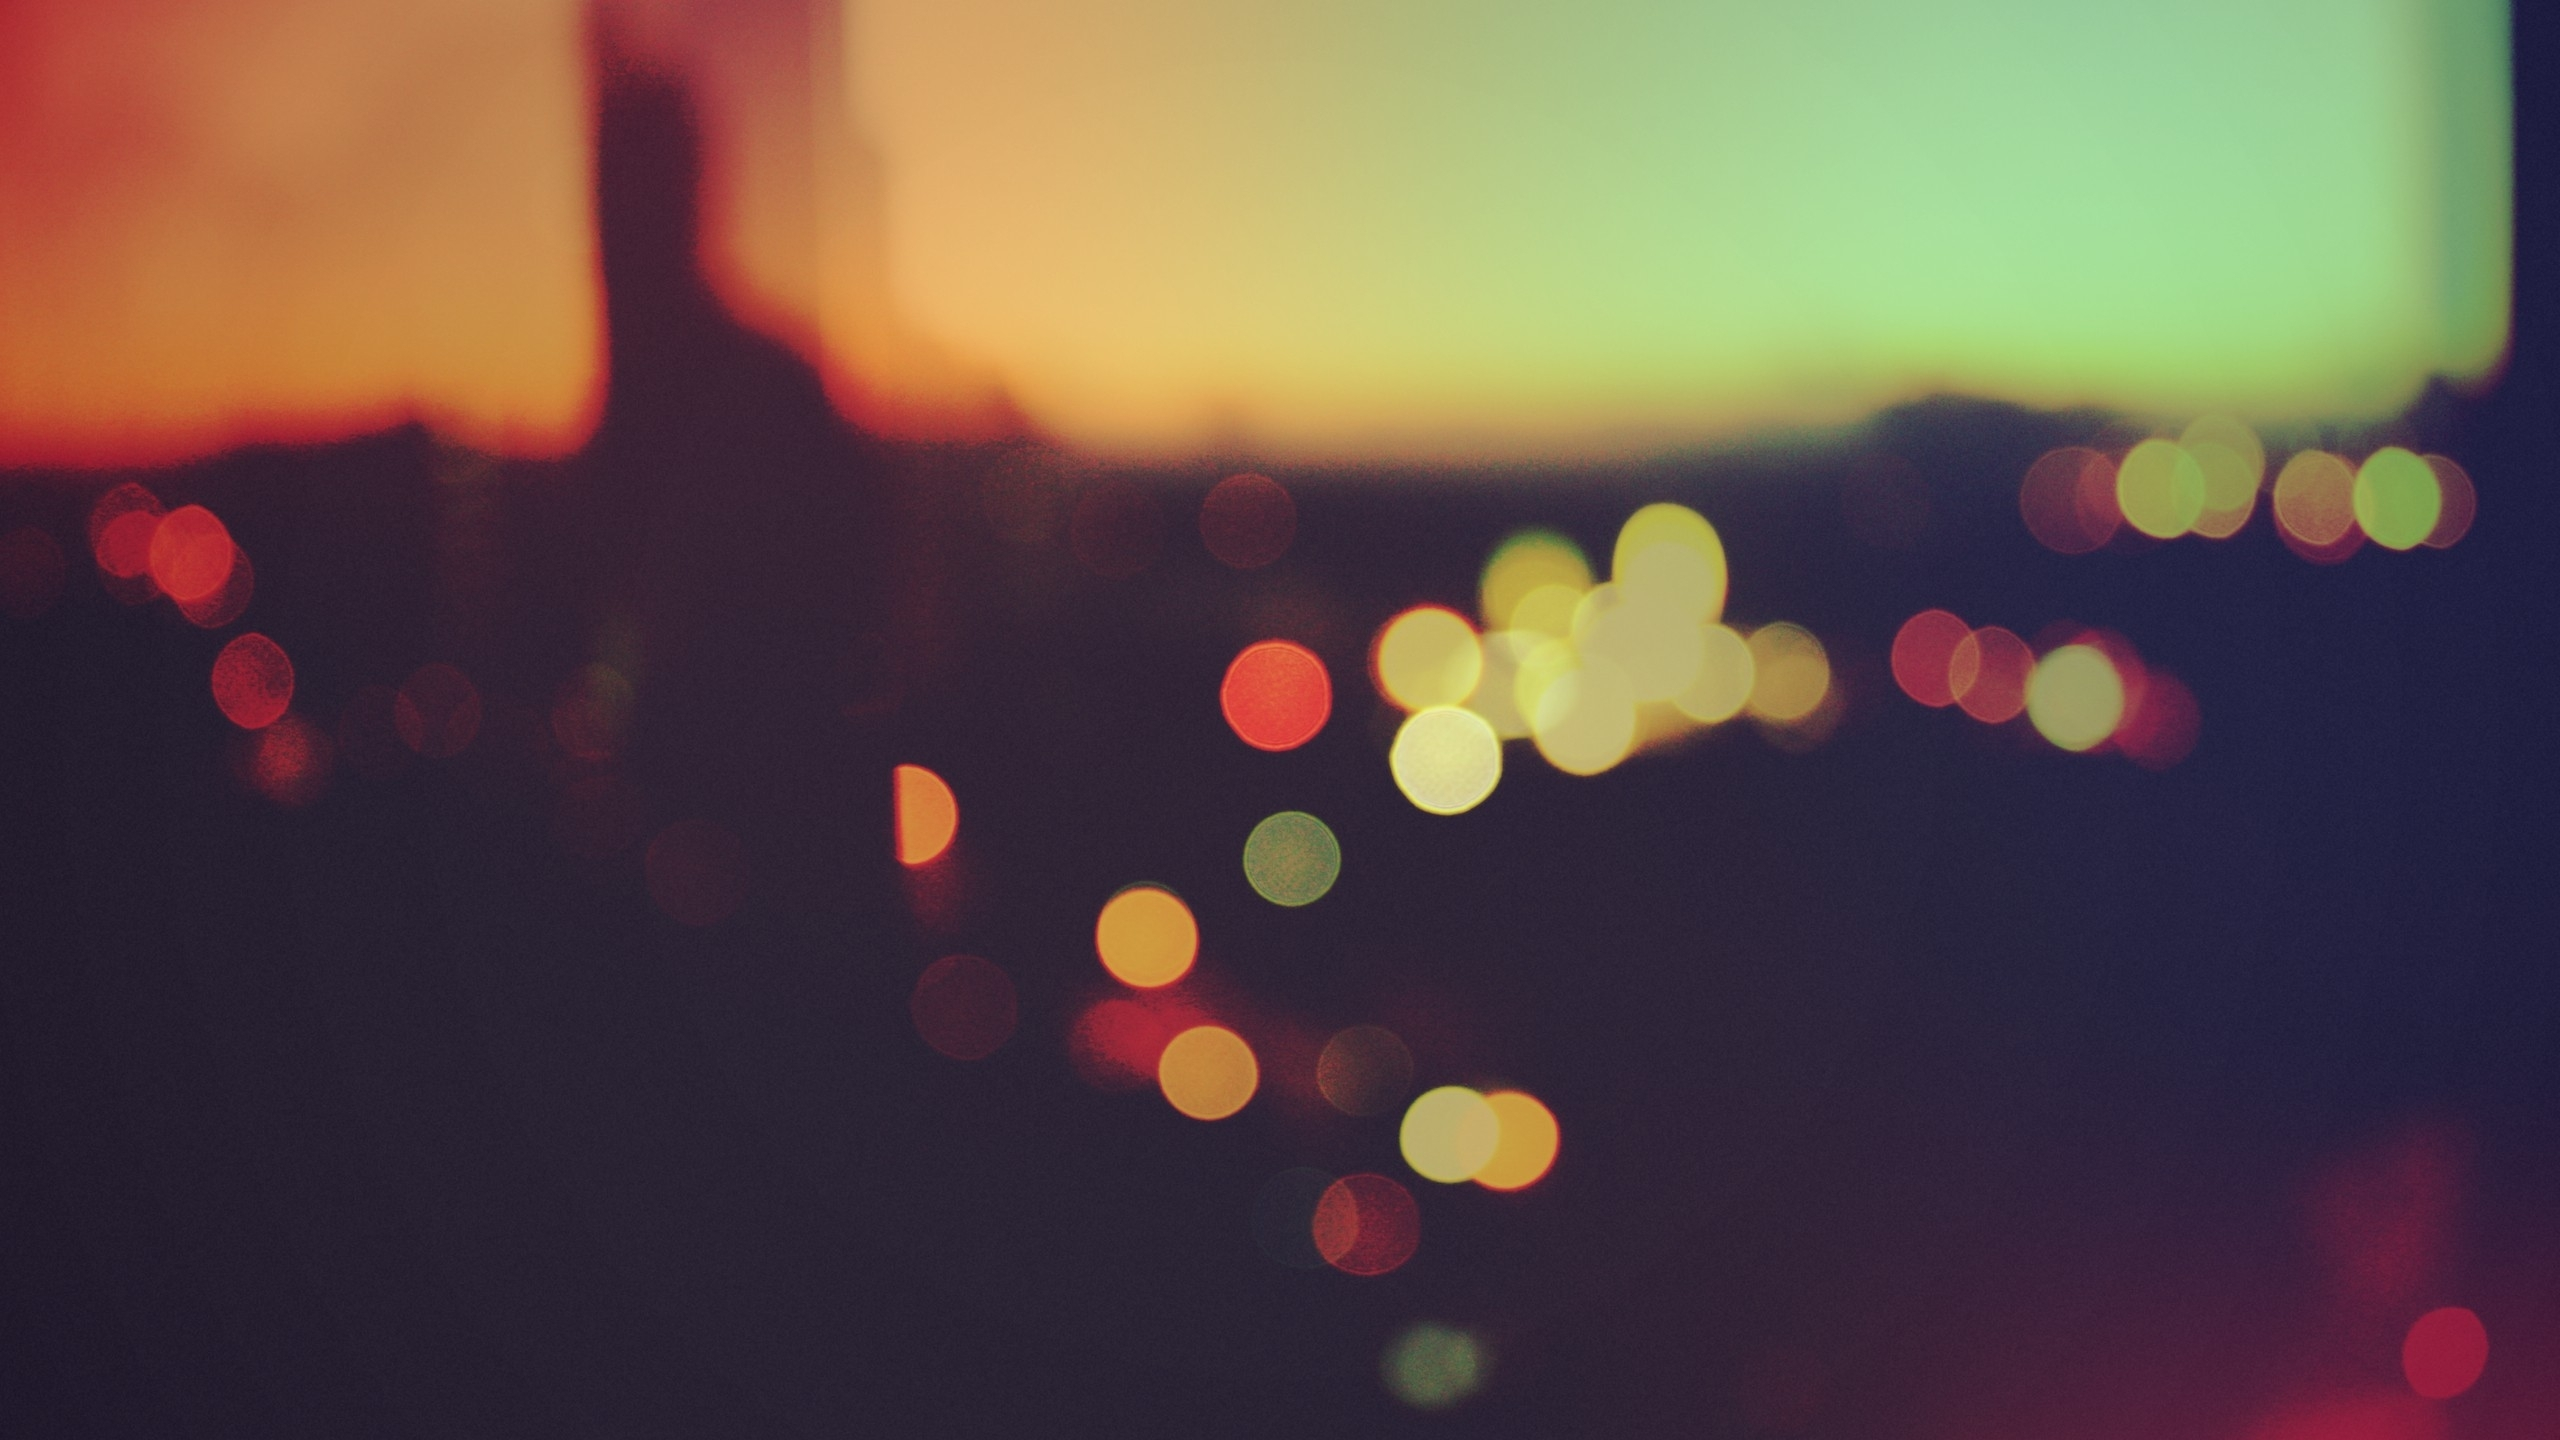 Hipster Wallpapers 2560x1440